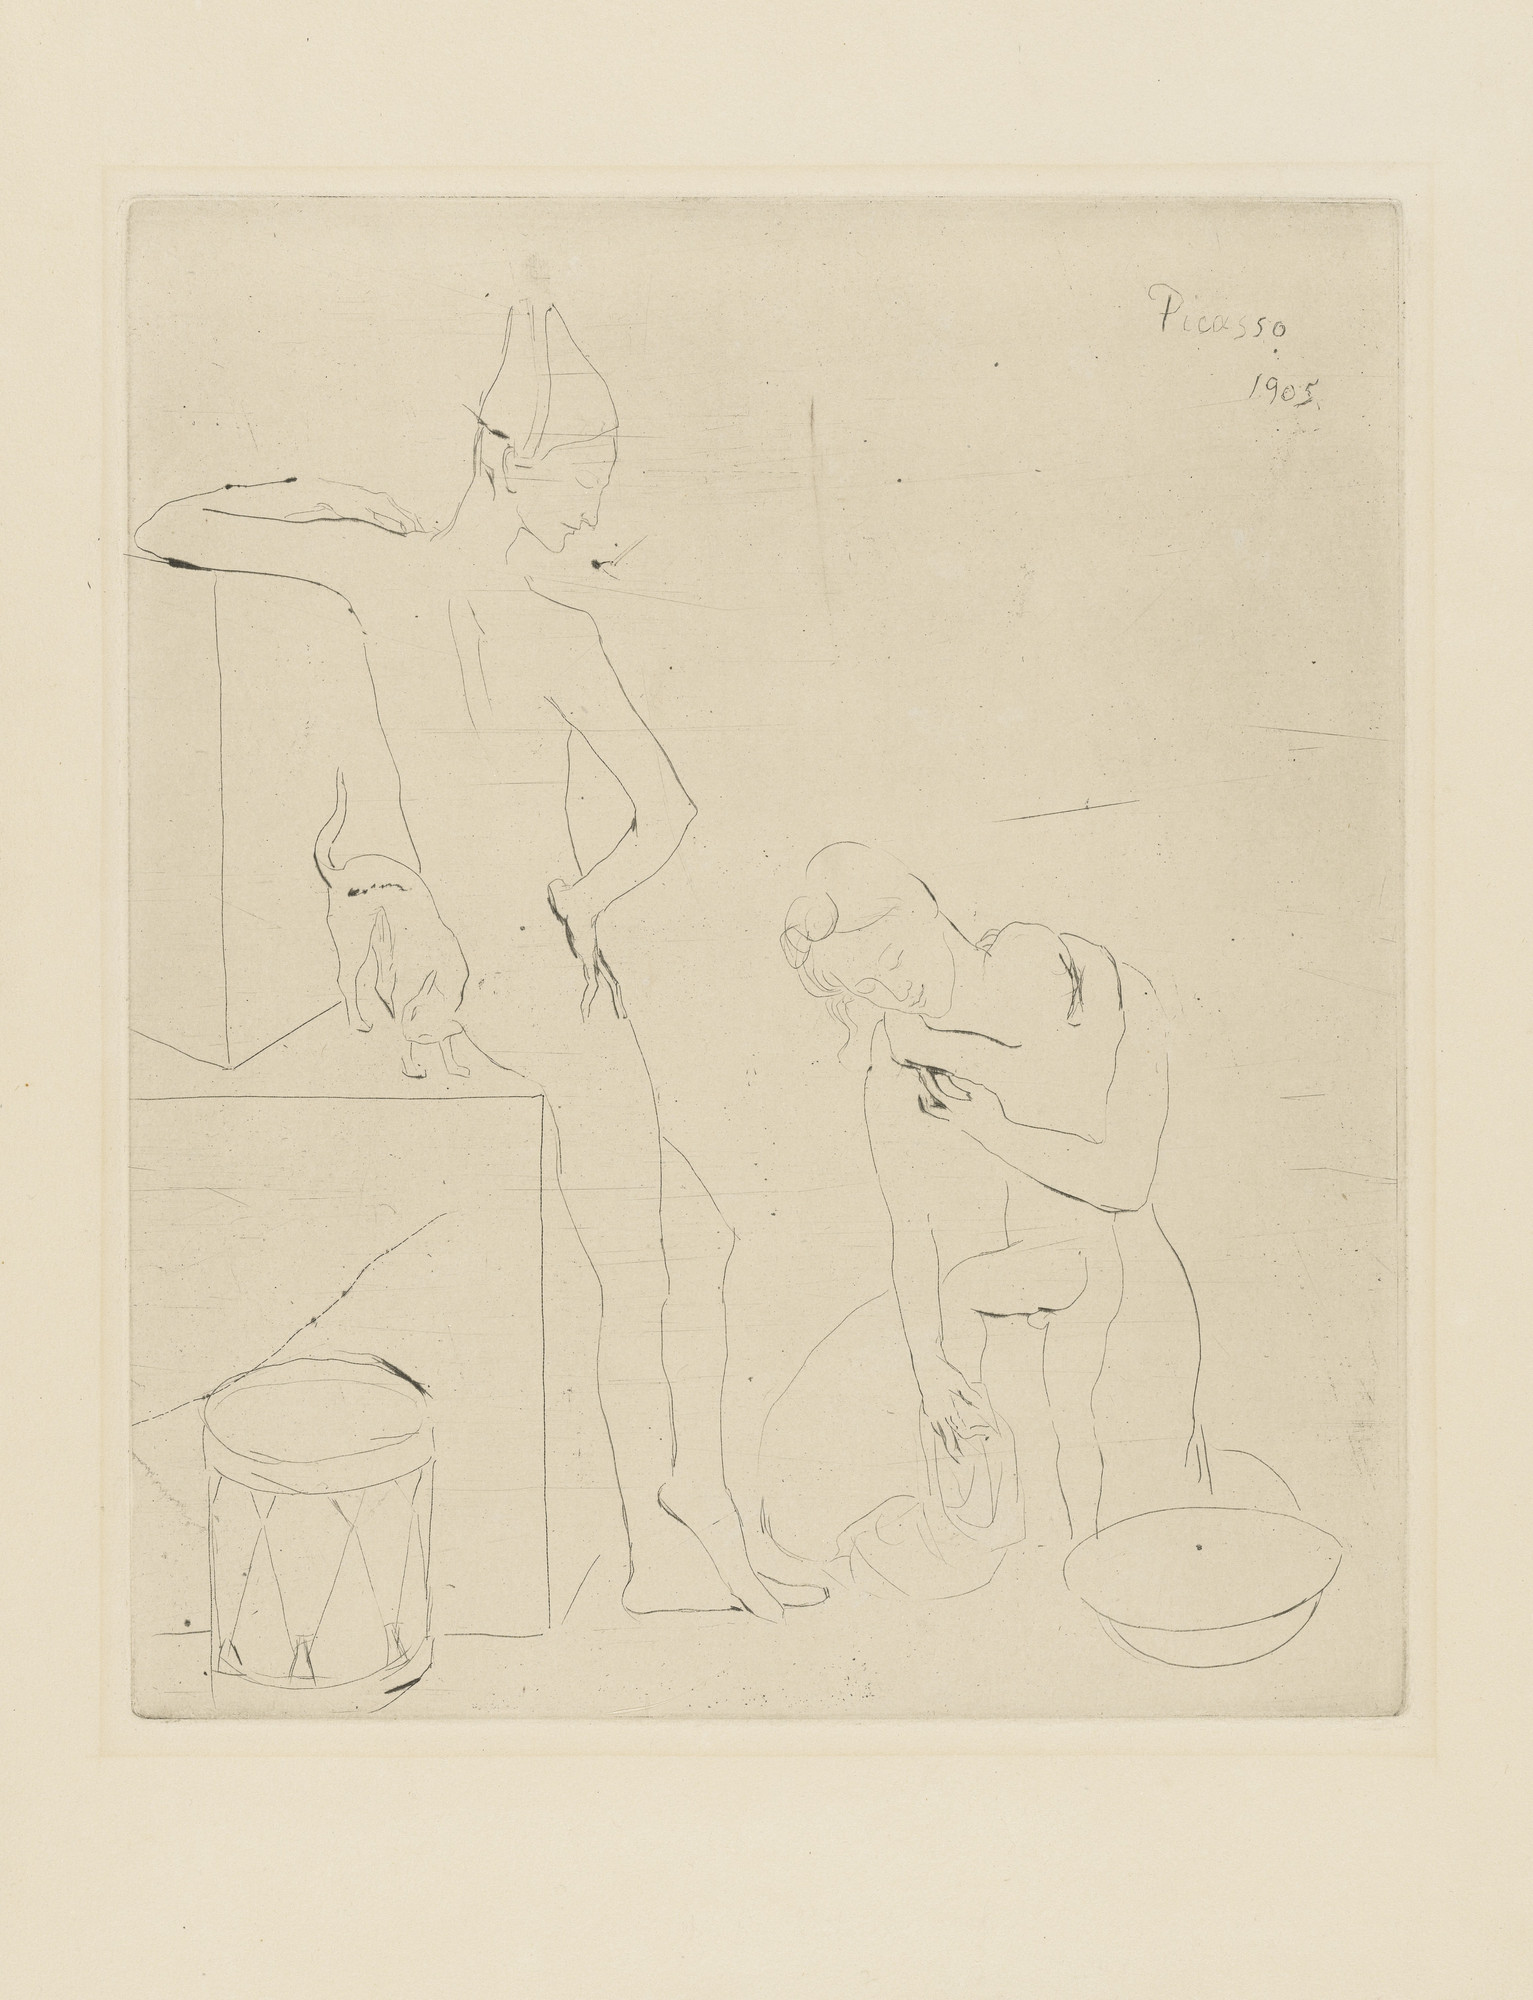 Pablo Picasso. Bath (Le Bain) from the Saltimbanques series. 1905, published 1913